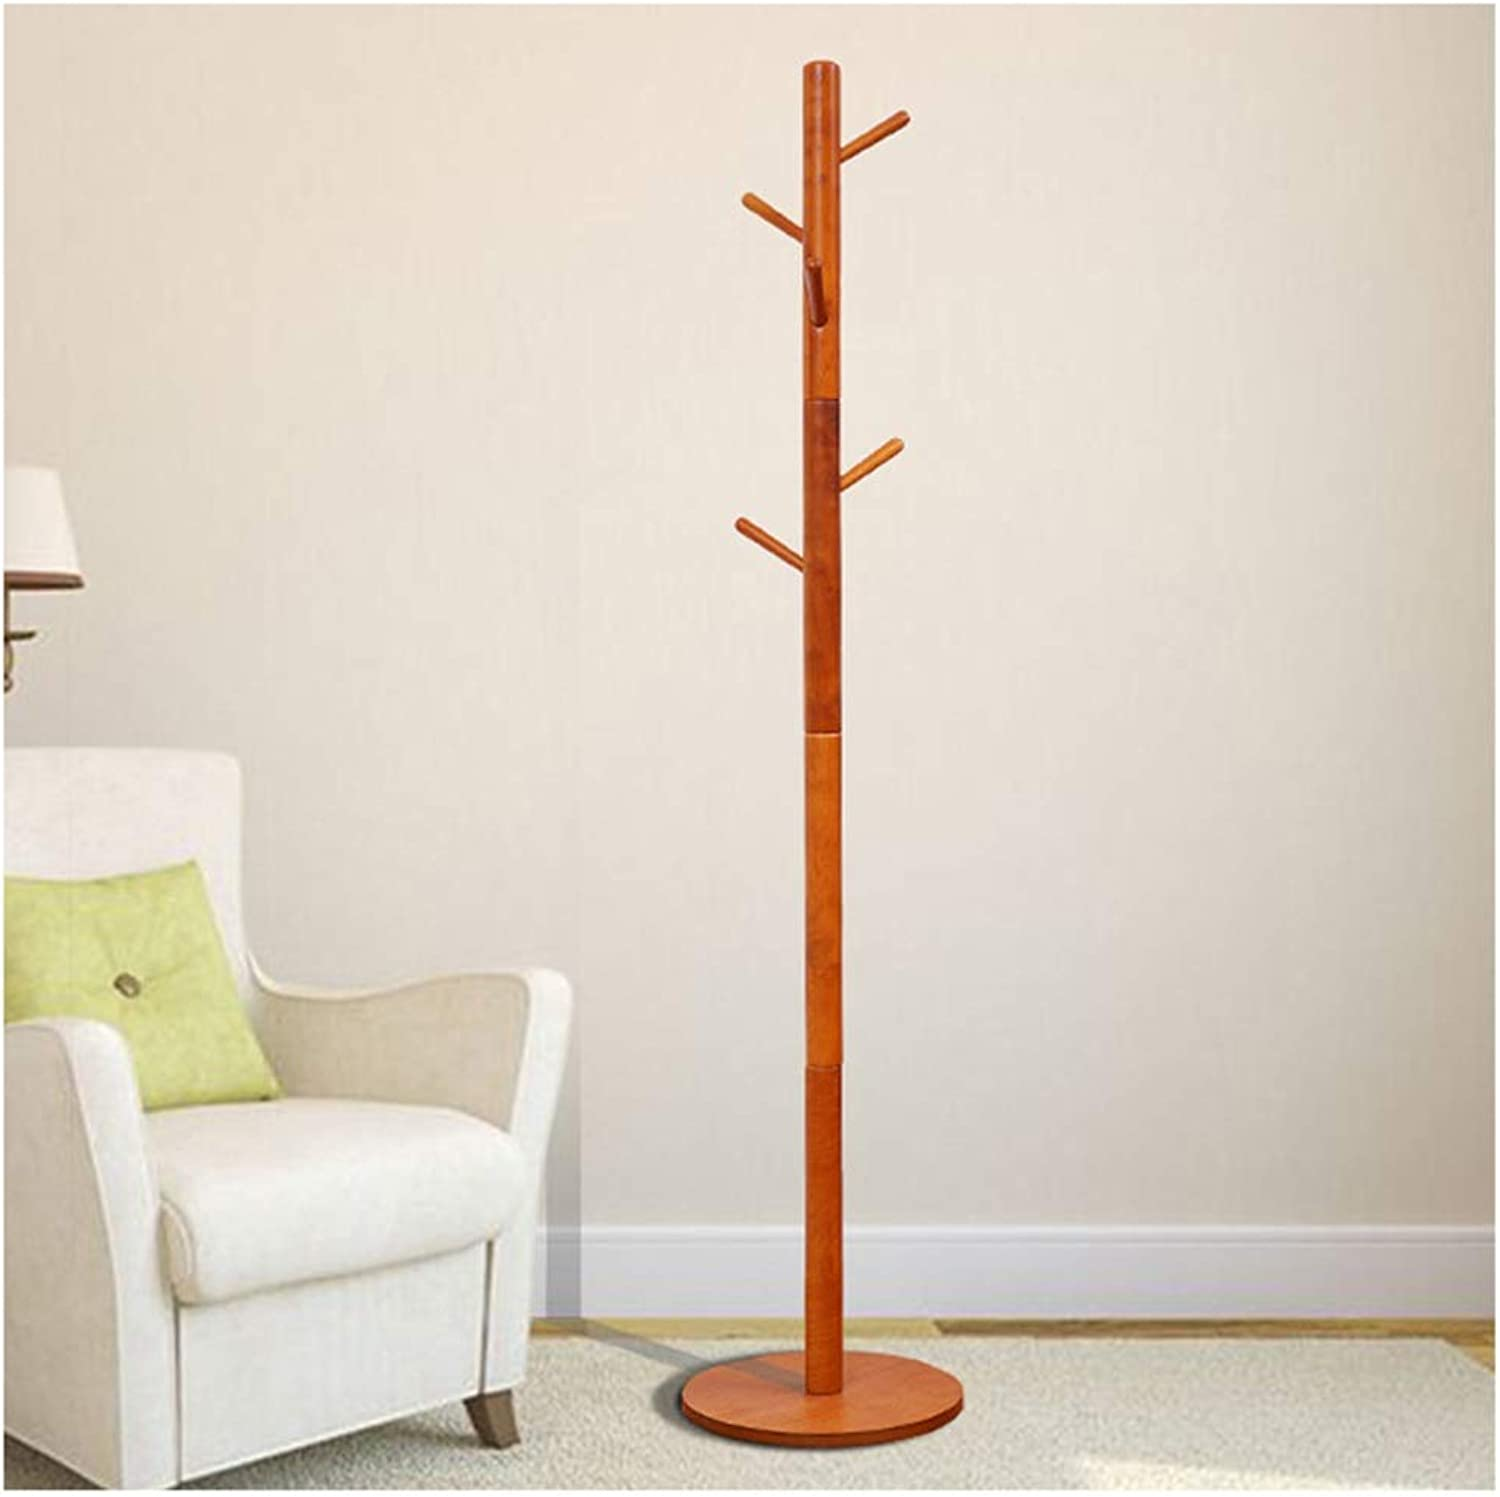 XIAOLONG Standing Coat Rack Sturdy and Tall Hallway Hat and Coat Stand - with Integrated Umbrella Walking Stick Holder Bedroom Hallway -45